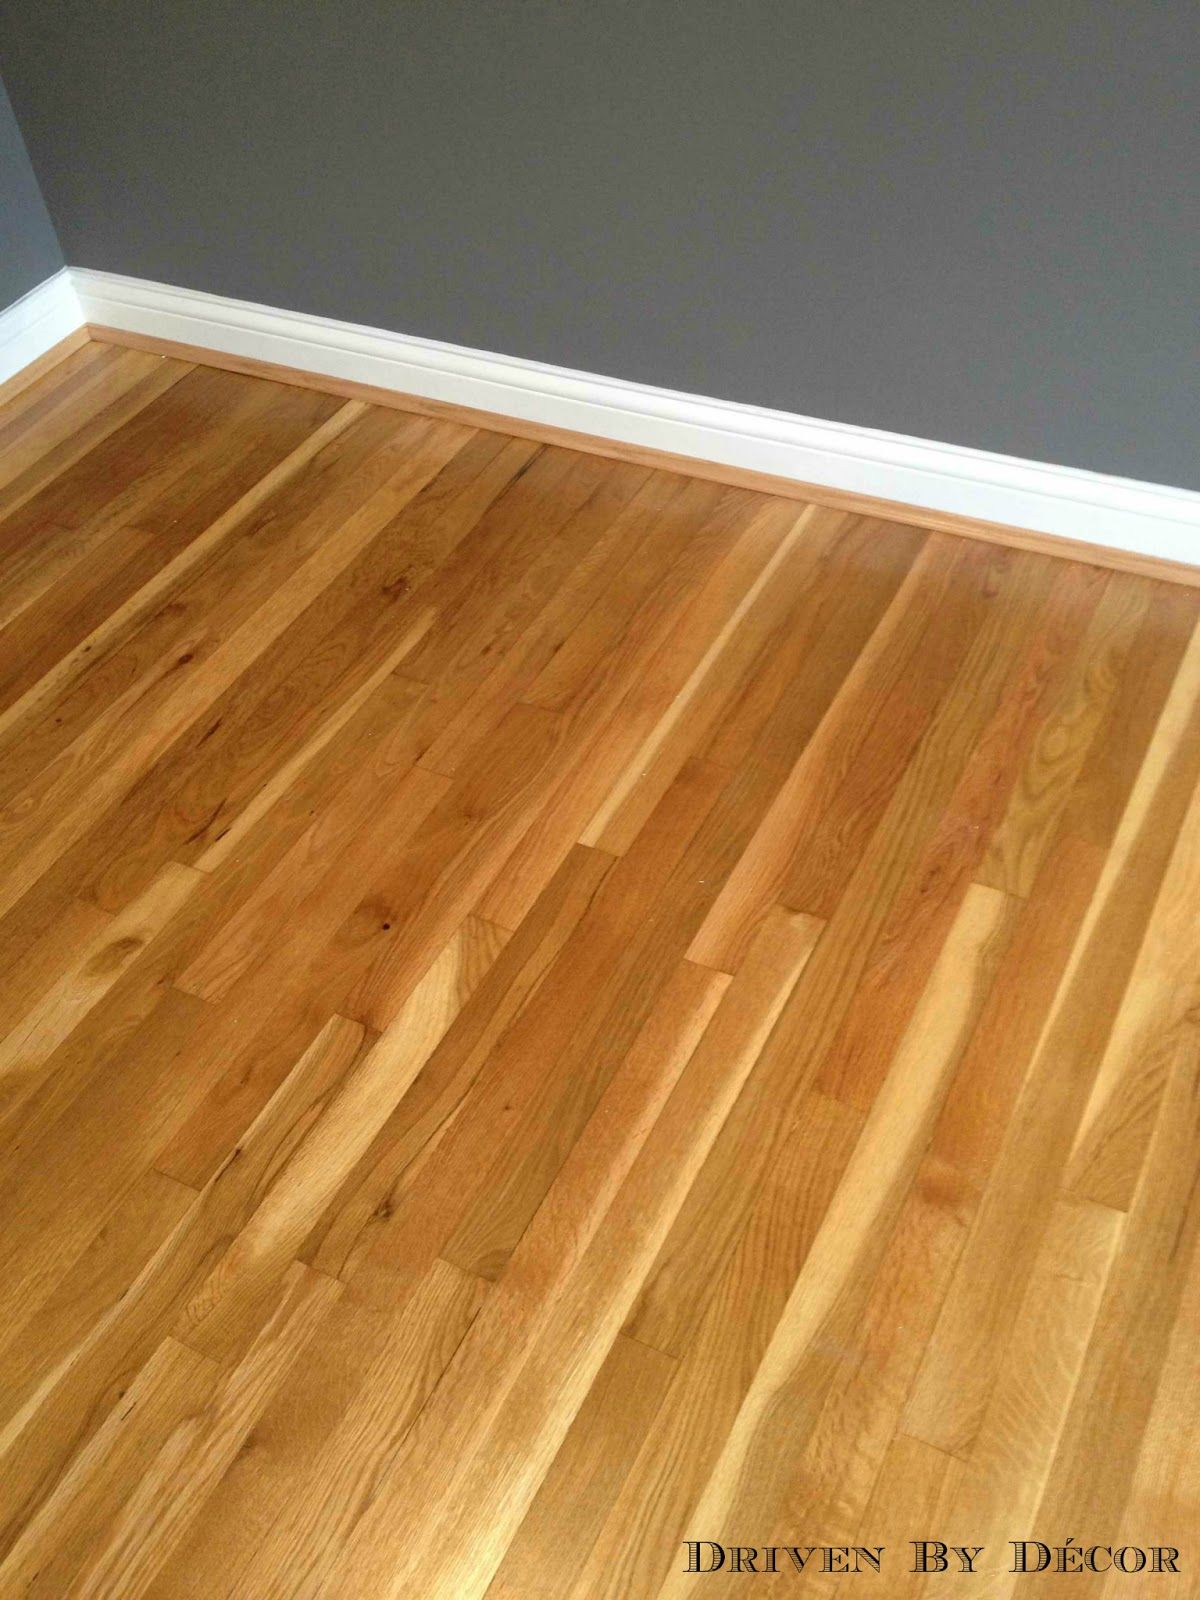 Refinishing hardwood floors water based vs oil based for Wood floor refinishing